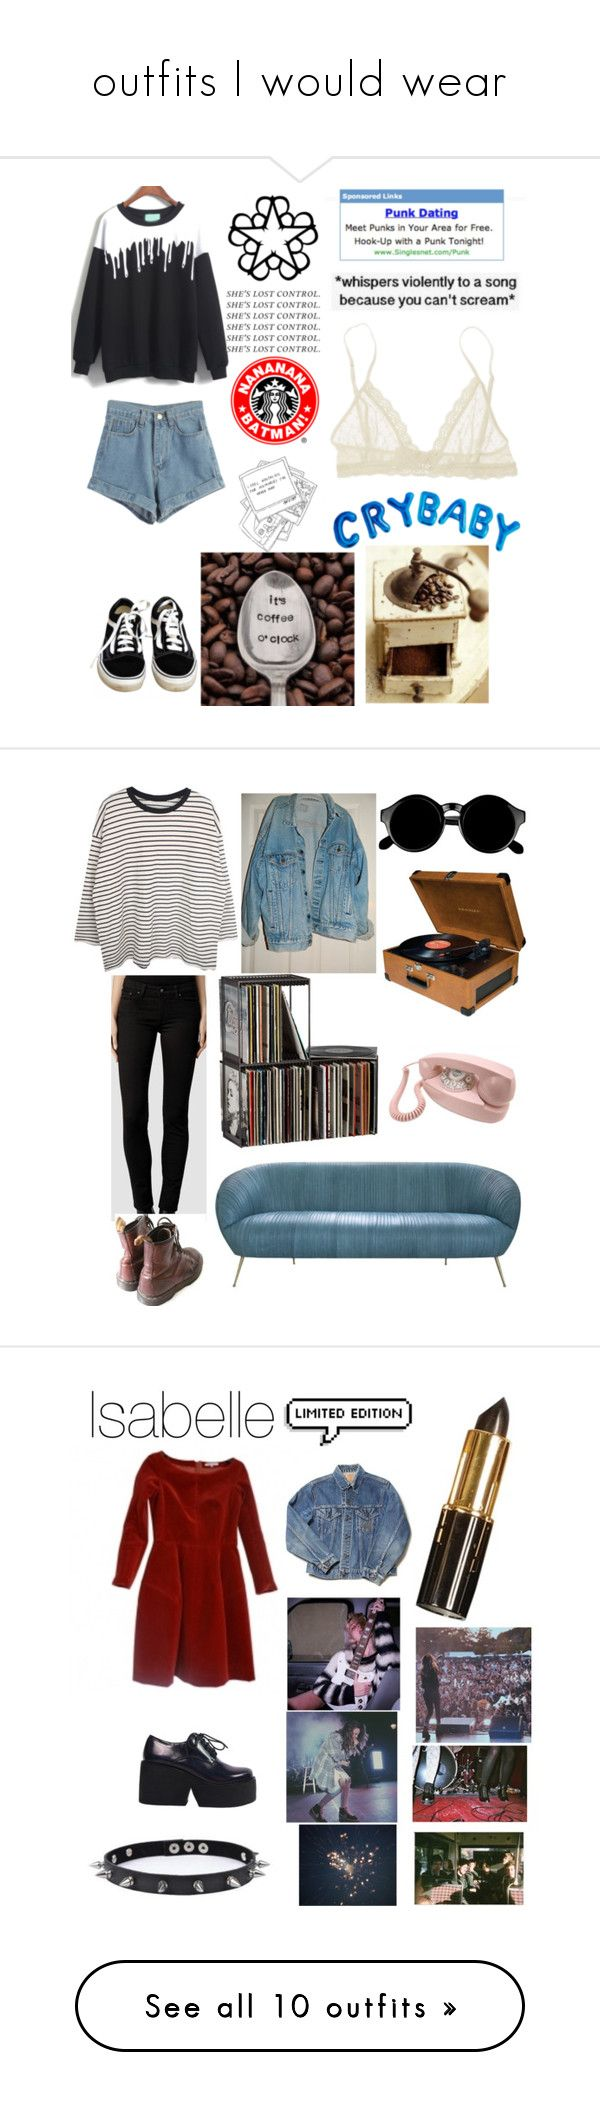 """outfits I would wear"" by llamapoop ❤ liked on Polyvore featuring Vans, WithChic, ...Lost, Eberjey, Blink, AllSaints, Levi's, CB2, Retrò and Crosley"